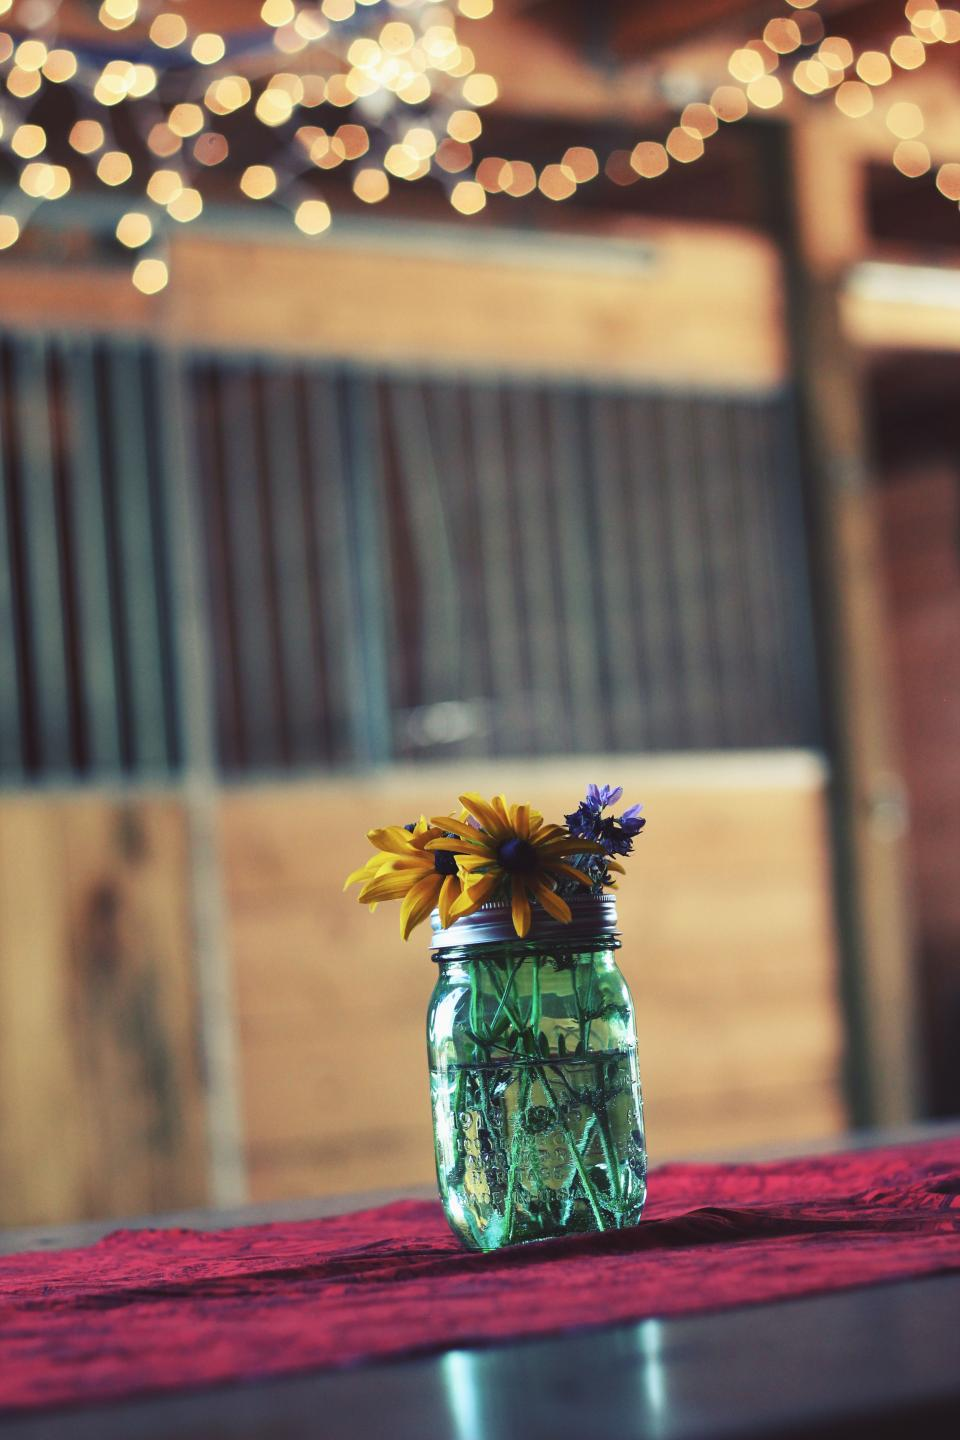 glass jar container water flowers display interior table bokeh